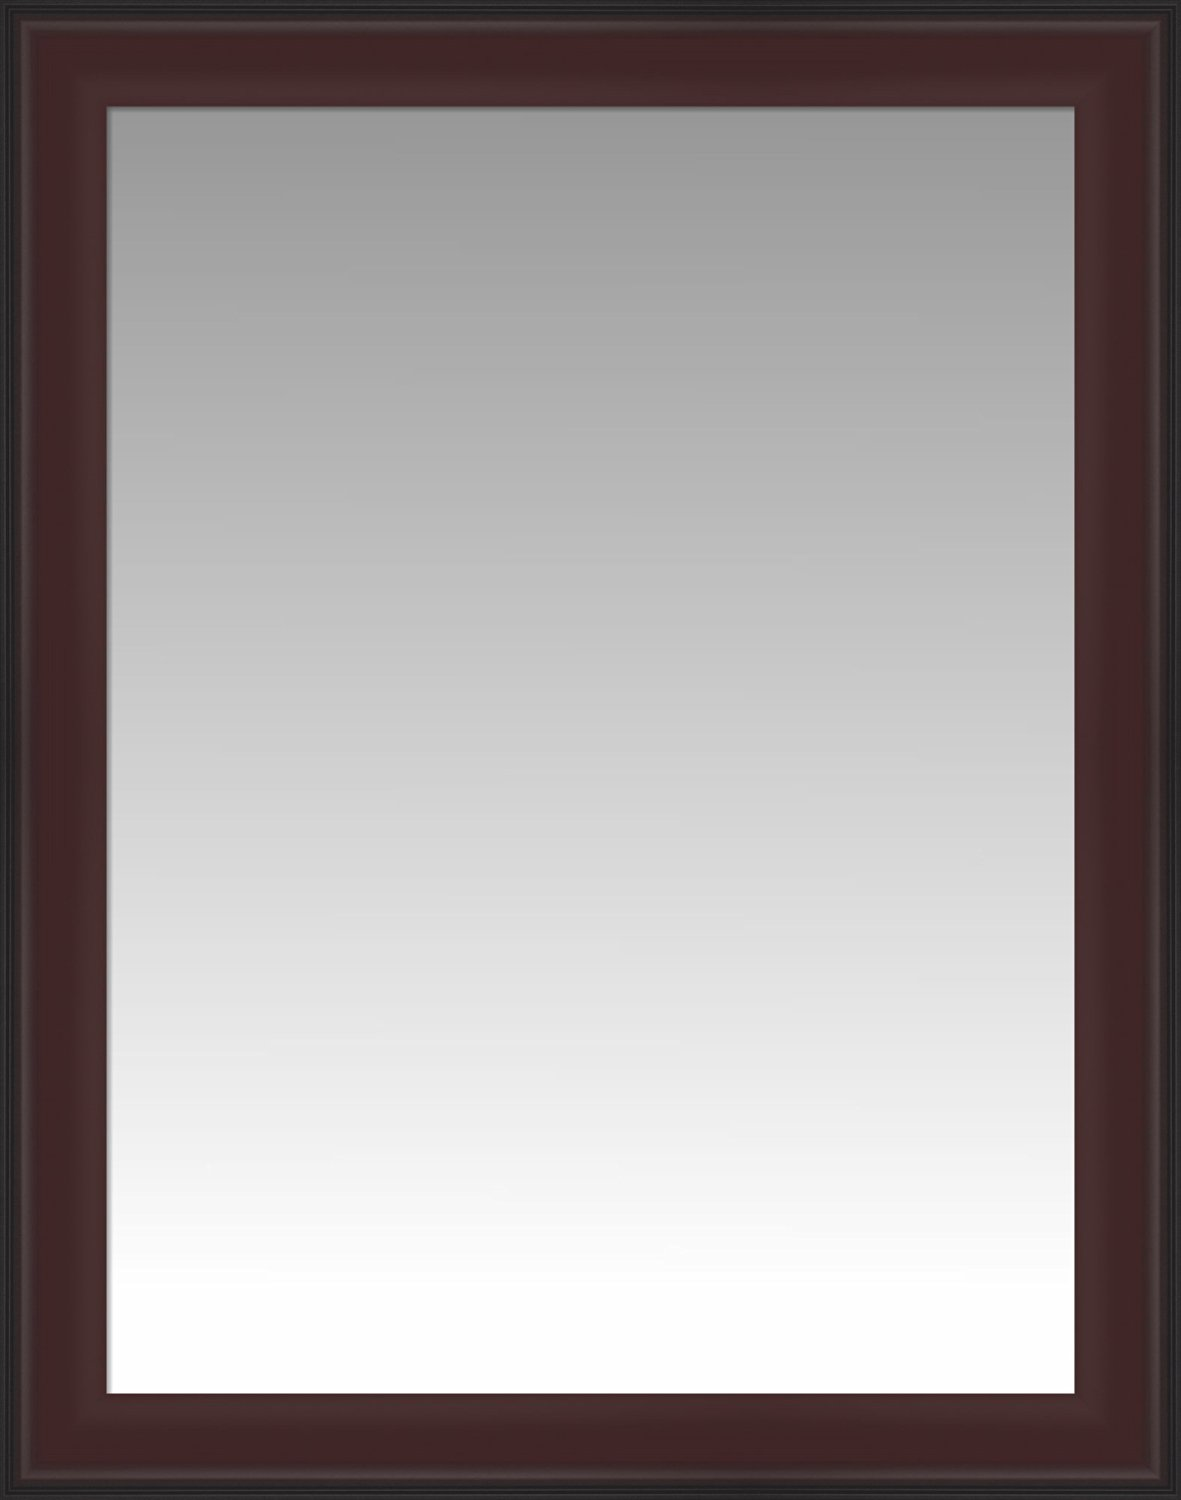 Formal Dark Cherry with Black Outer Edge Wall Mirror, Size 25.5 X 31.5